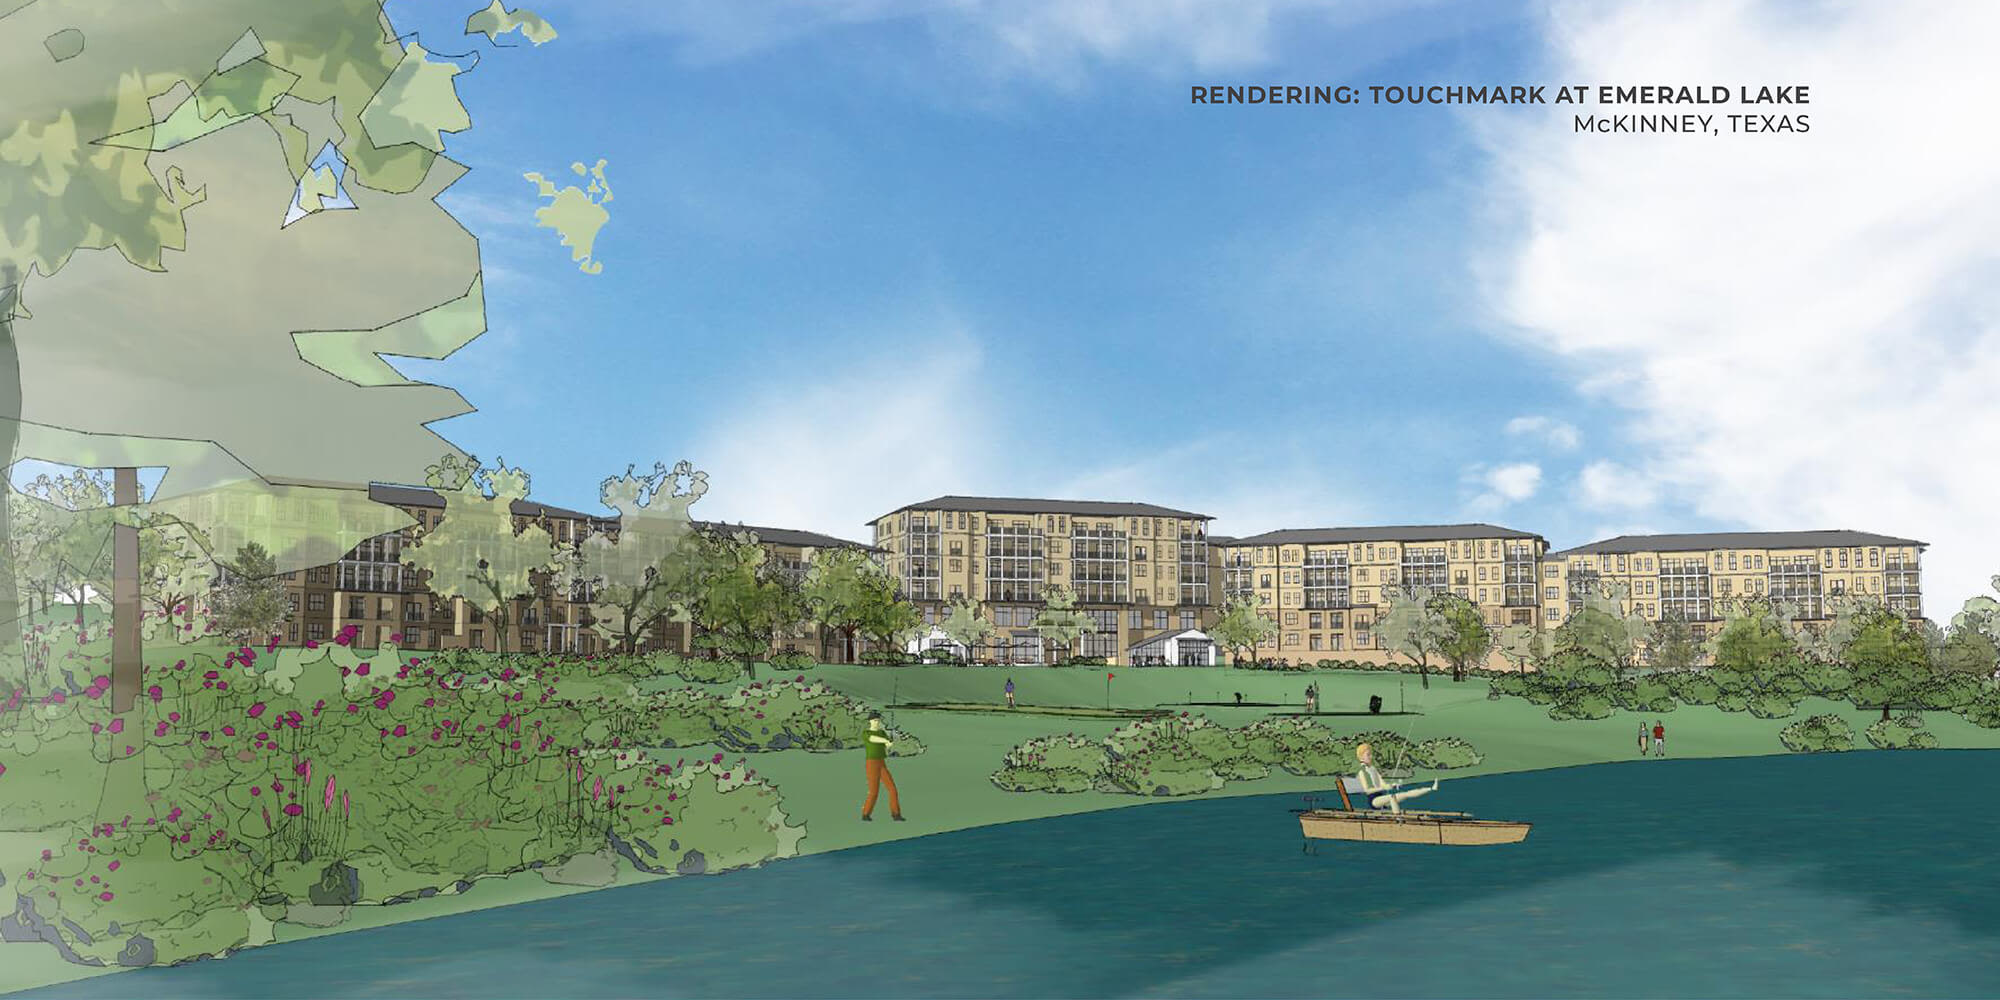 Rendering of Touchmark at Emerald Lake in McKinney, Texas